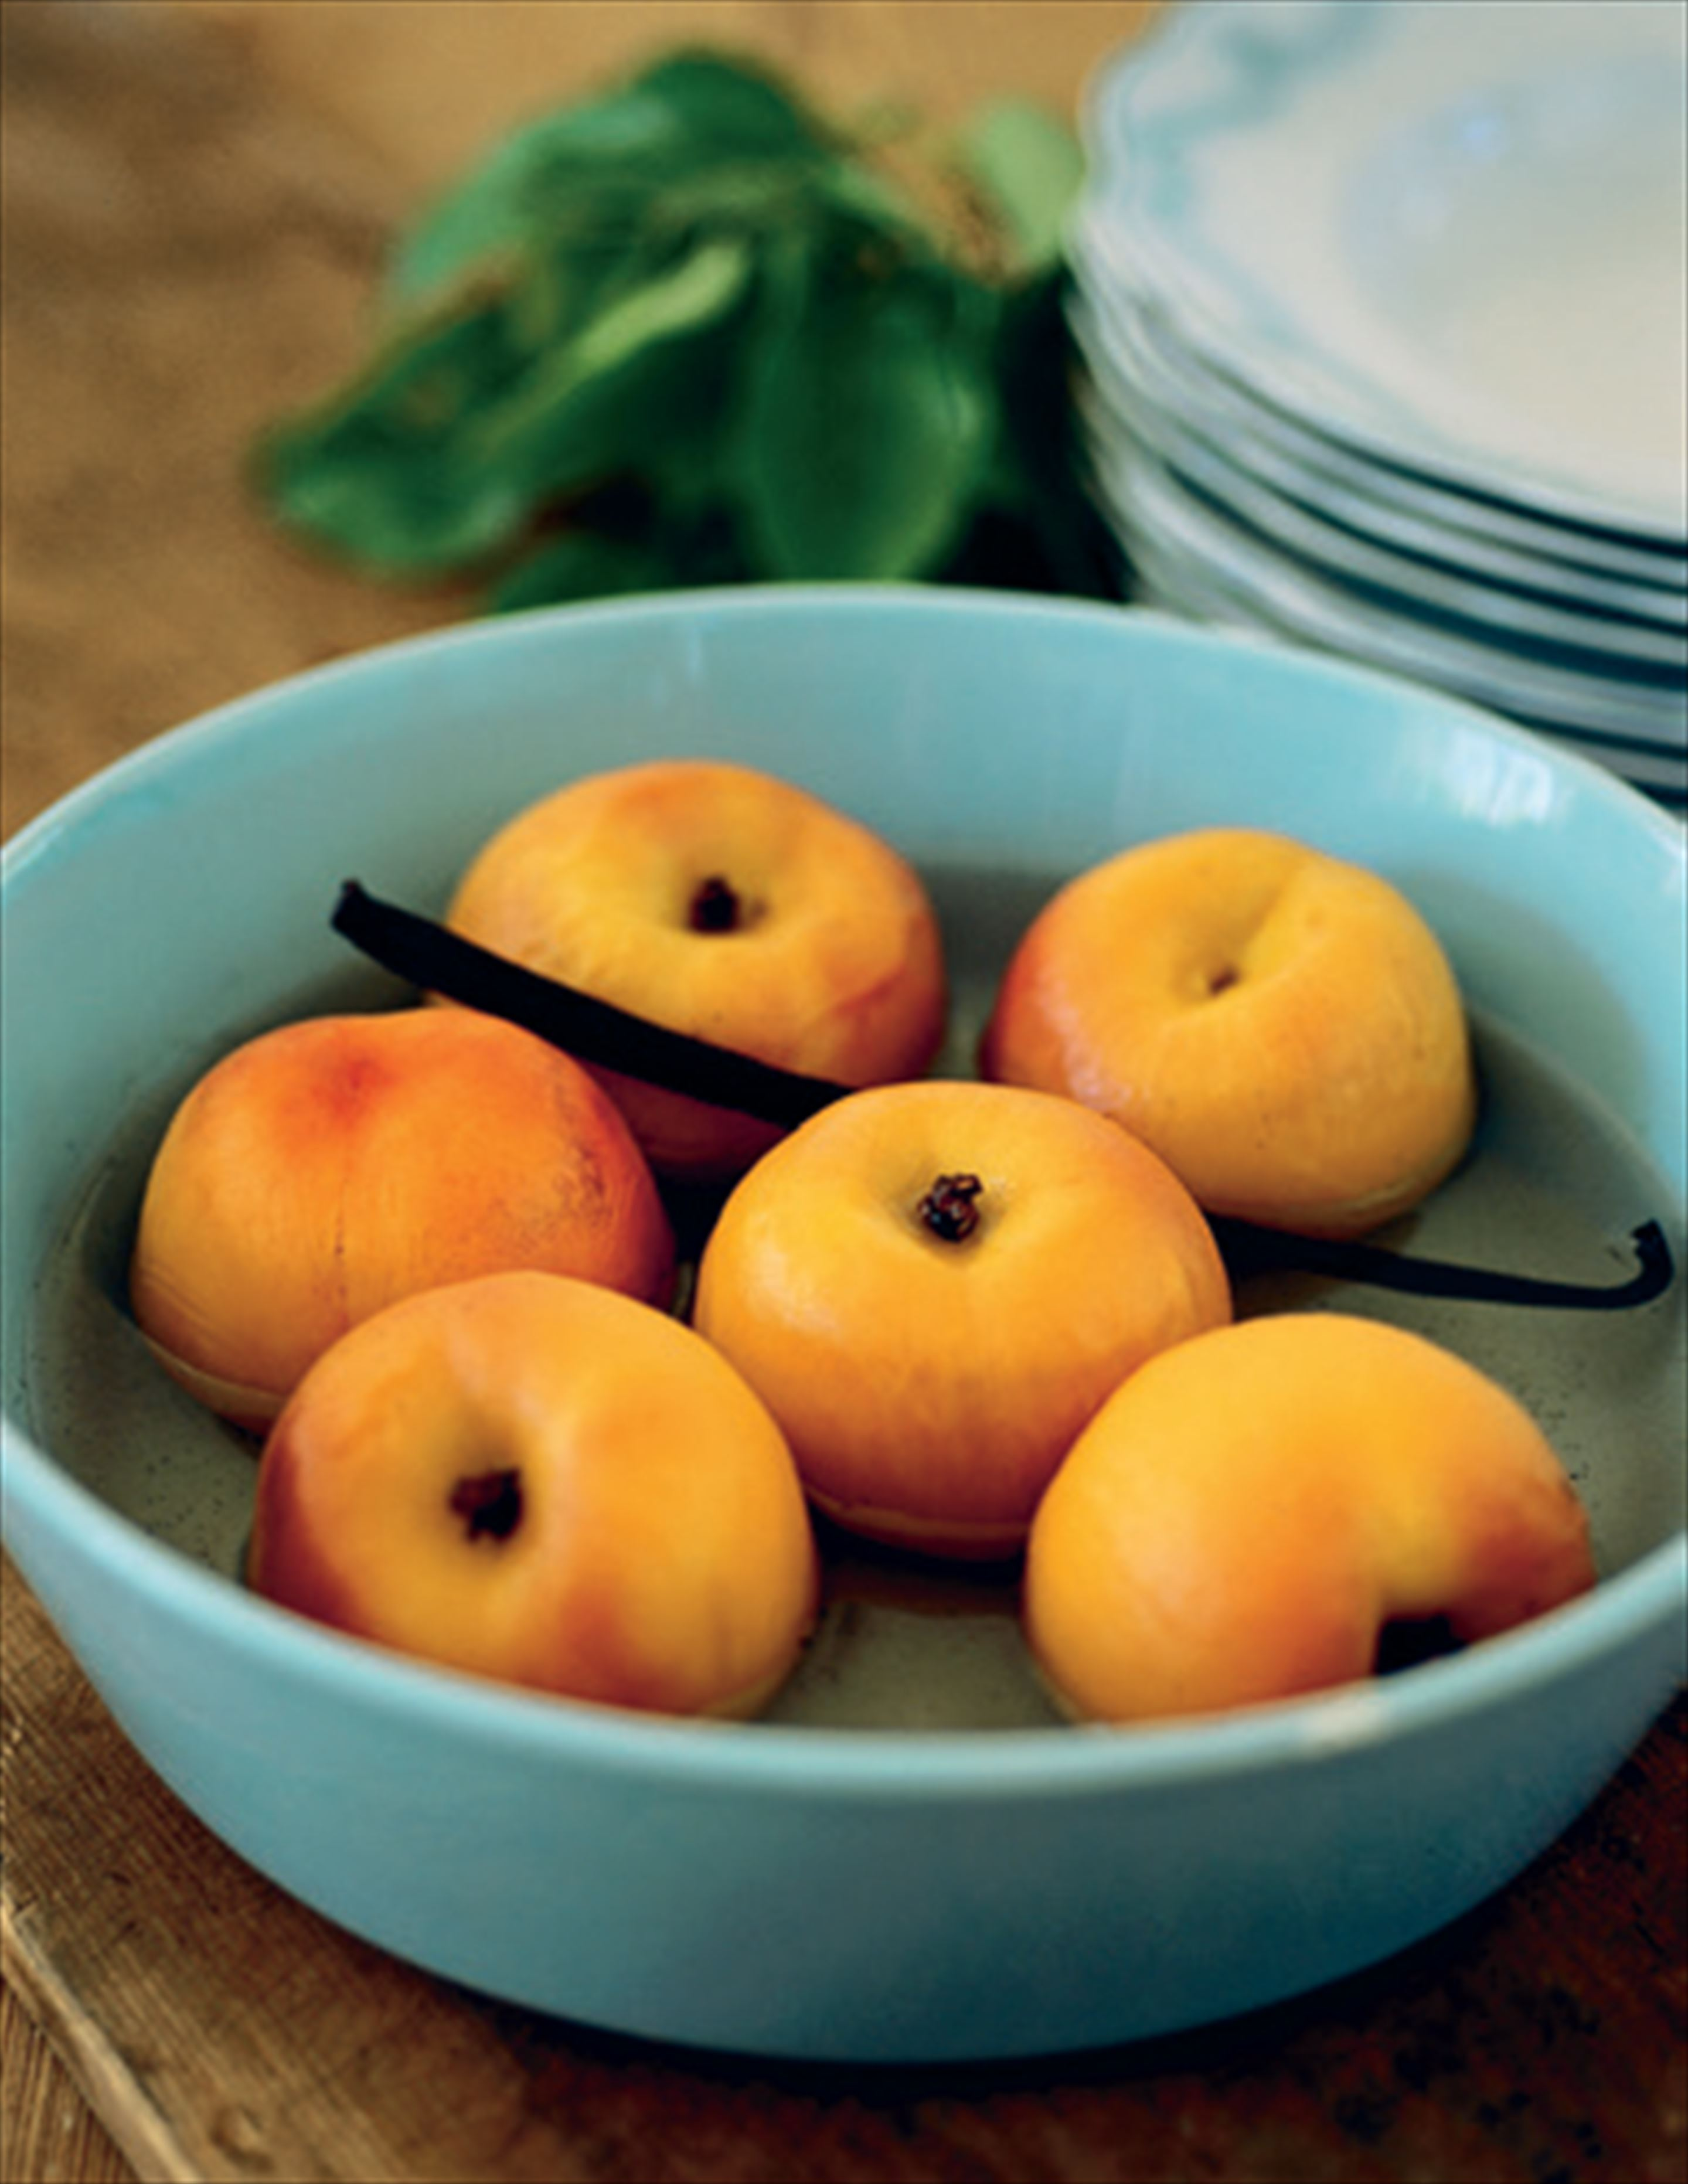 Vanilla-poached peaches or plums